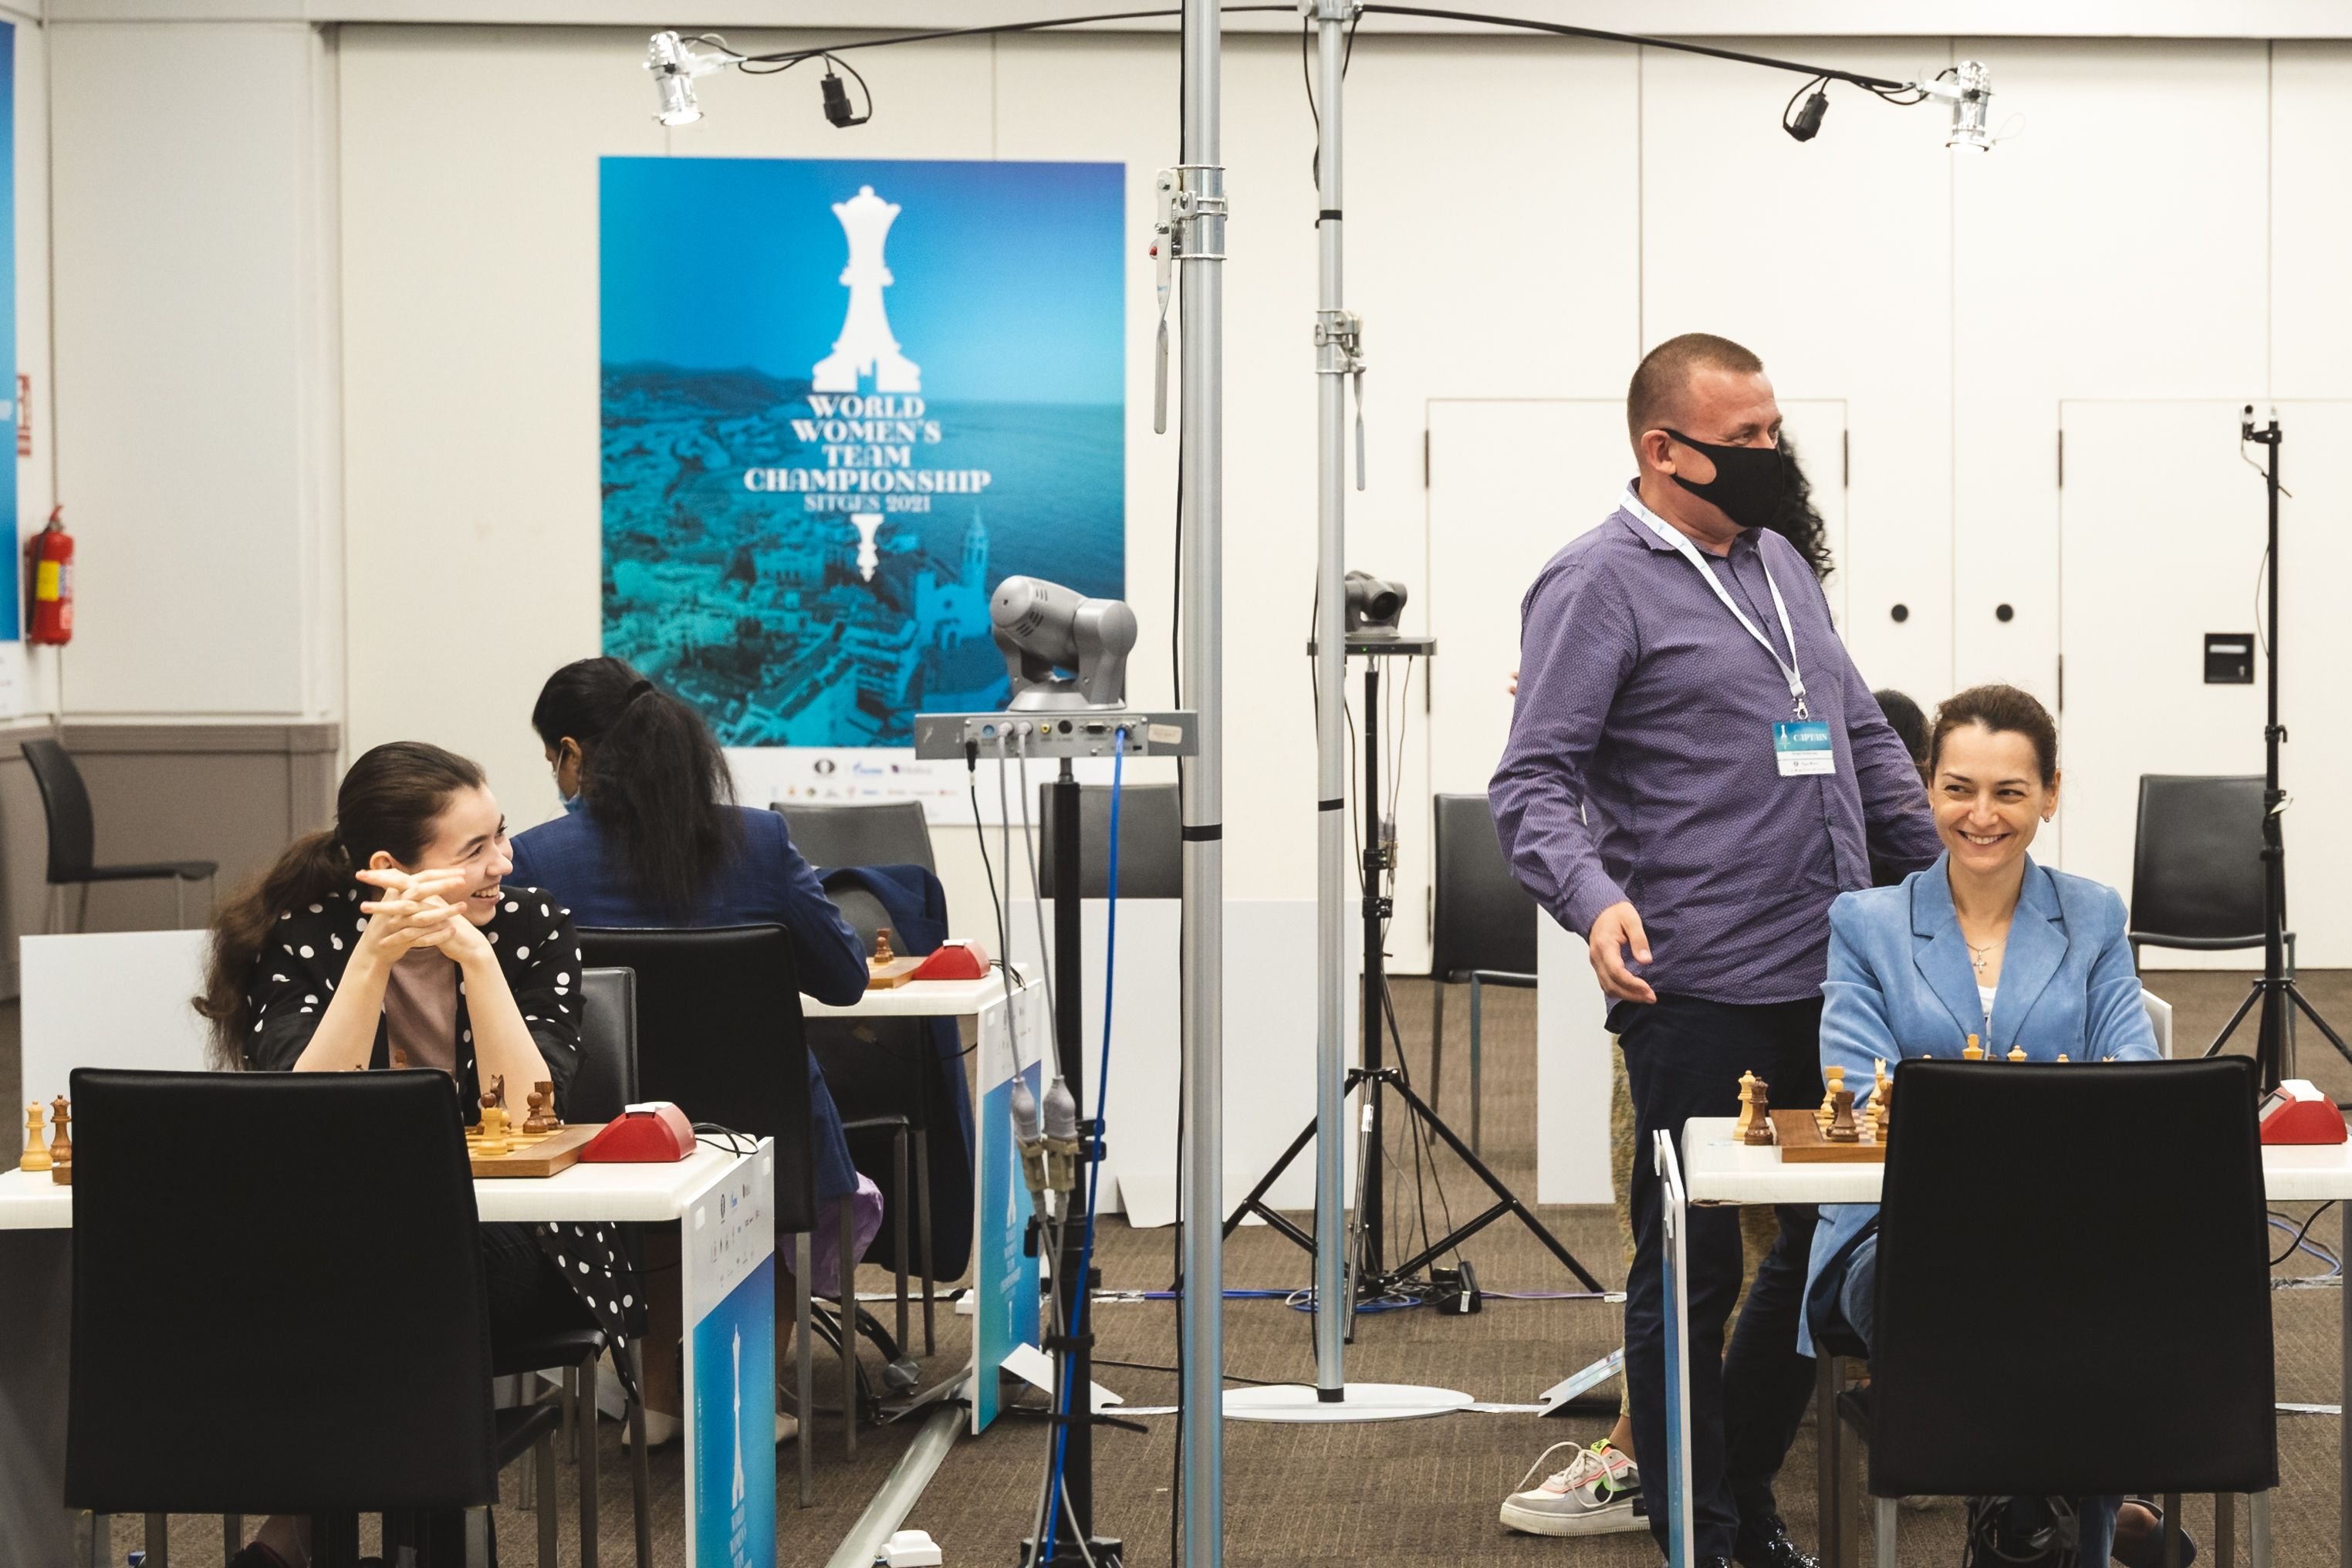 Best Russian advice with Grandmaster trainer Rublevsky at the Women's Education World Championship